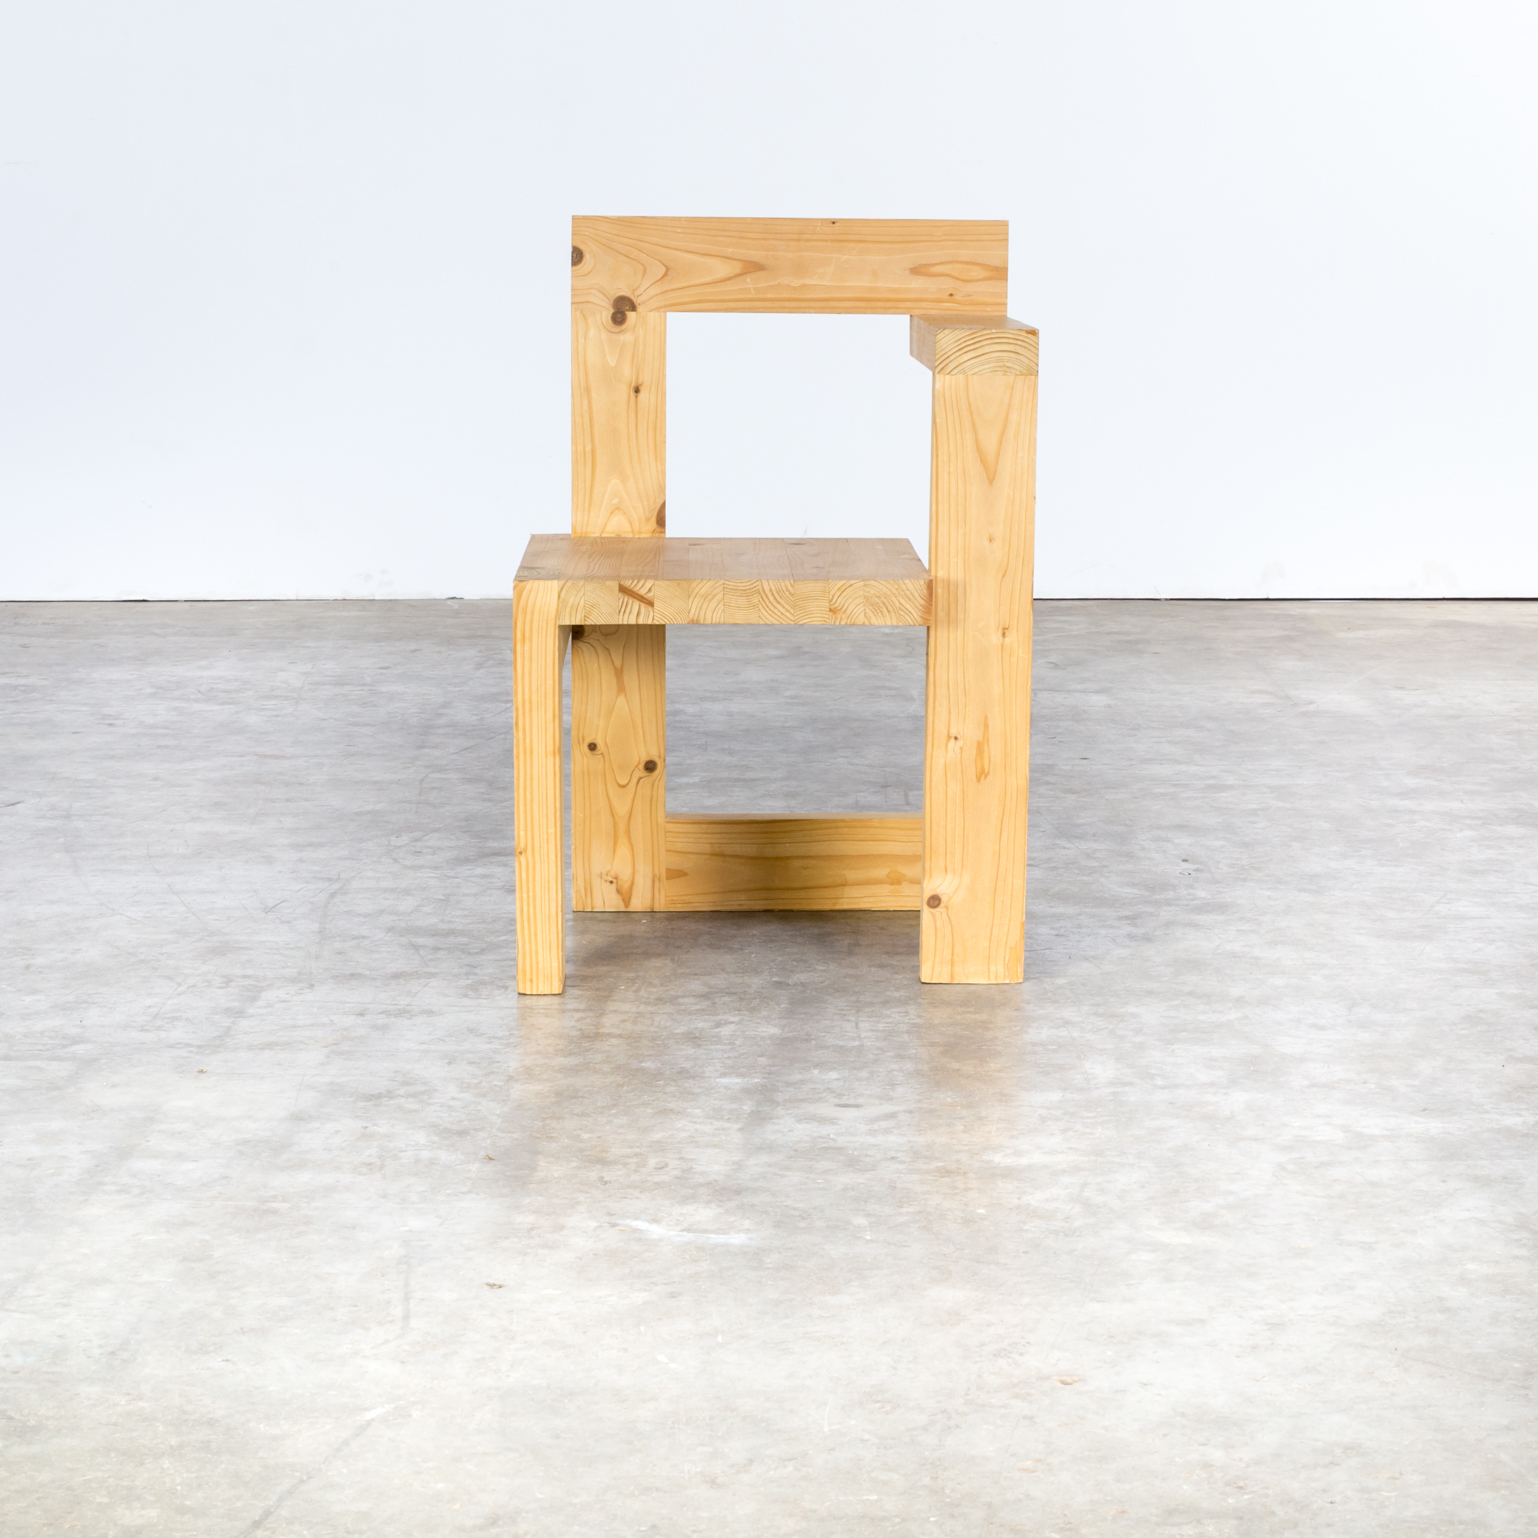 60s gerrit rietveld wooden steltman chair barbmama for Designer chairs from the 60s